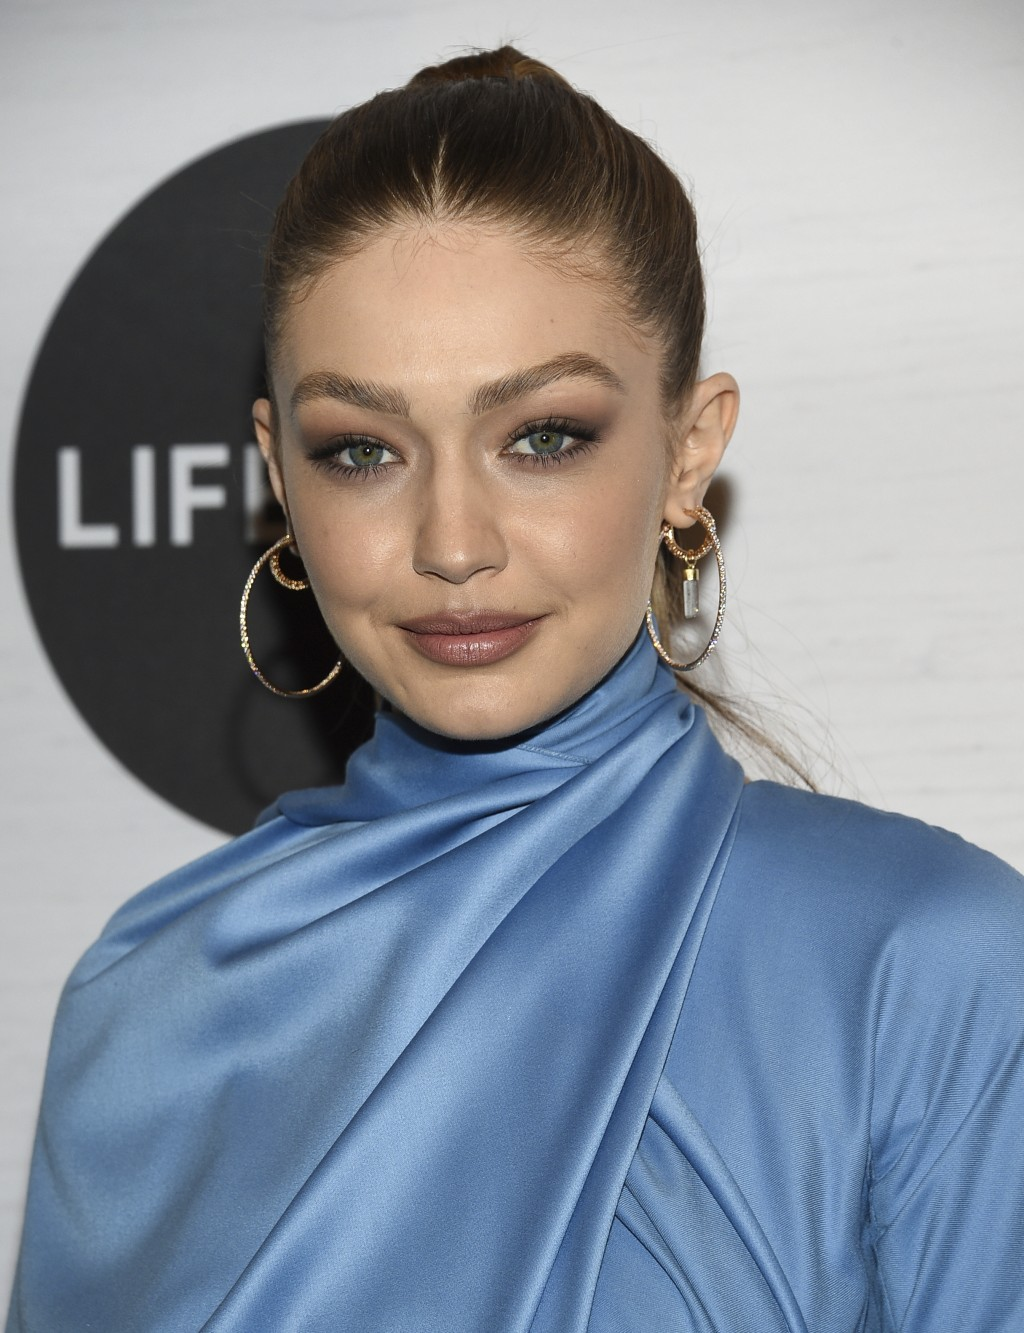 Honoree Gigi Hadid attends Variety's Power of Women: New York presented by Lifetime at Cipriani 42nd Street on Friday, April 5, 2019, in New York. (Ph